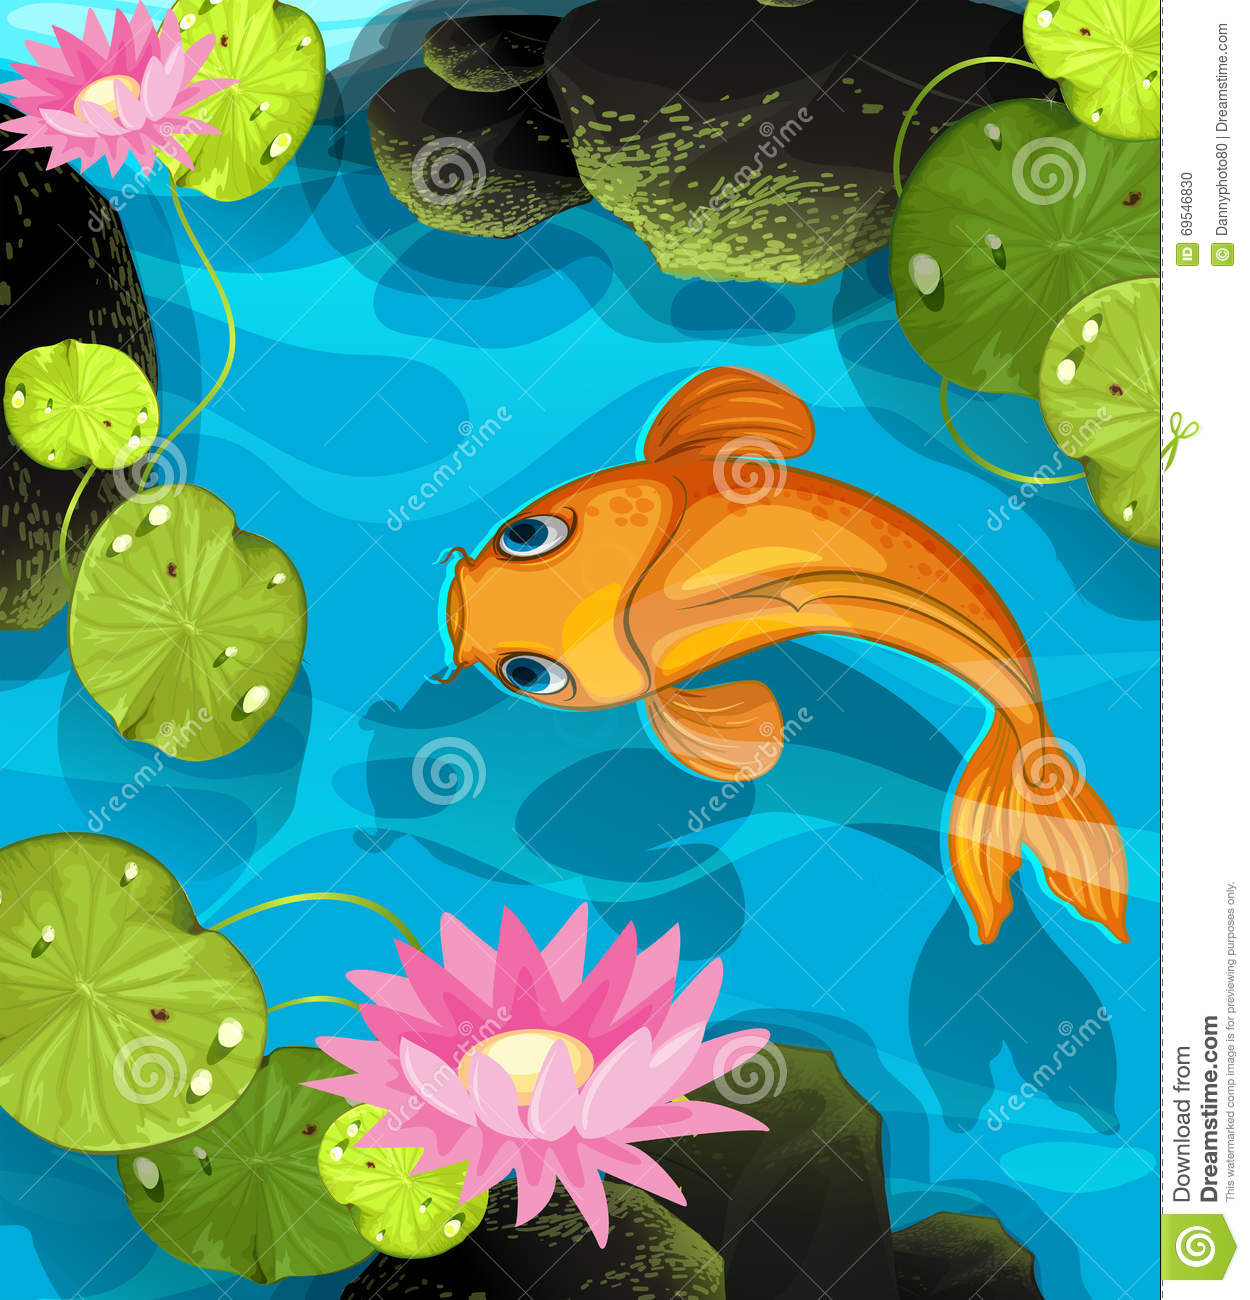 Koi swimming in the lotus pool stock vector image 69546830 for Koi swimming pool